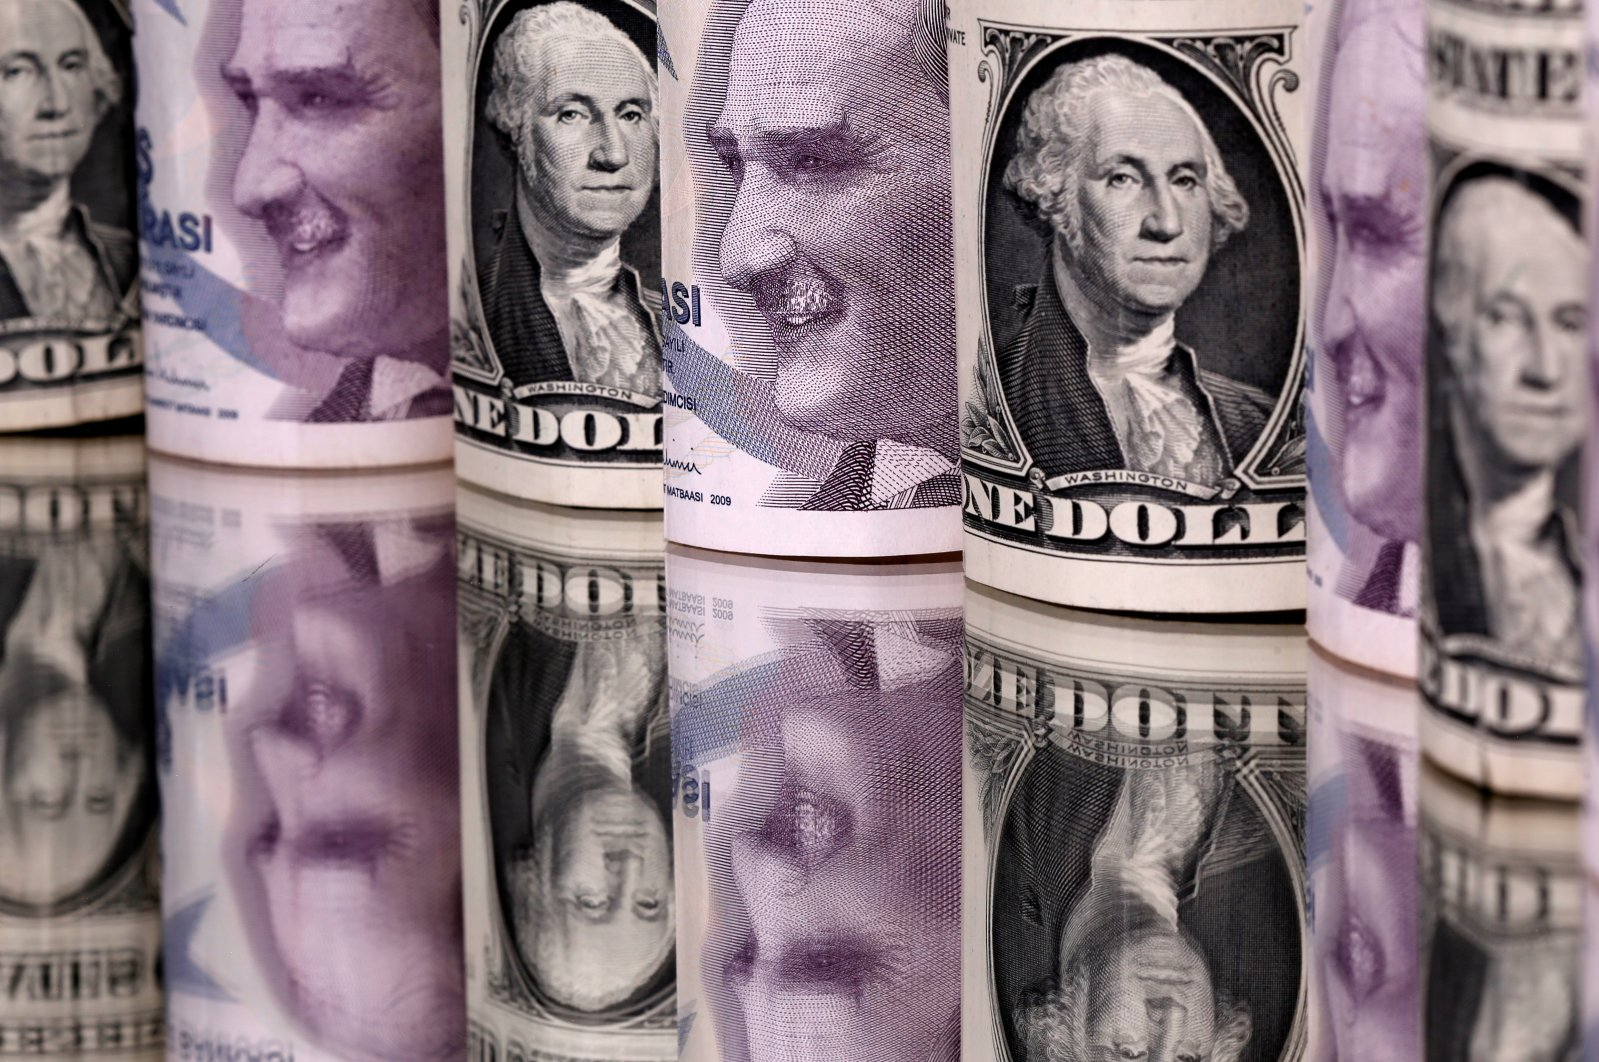 Turkish lira and U.S. dollar banknotes are seen in this illustration created on Jan. 6, 2020. (Reuters Photo)